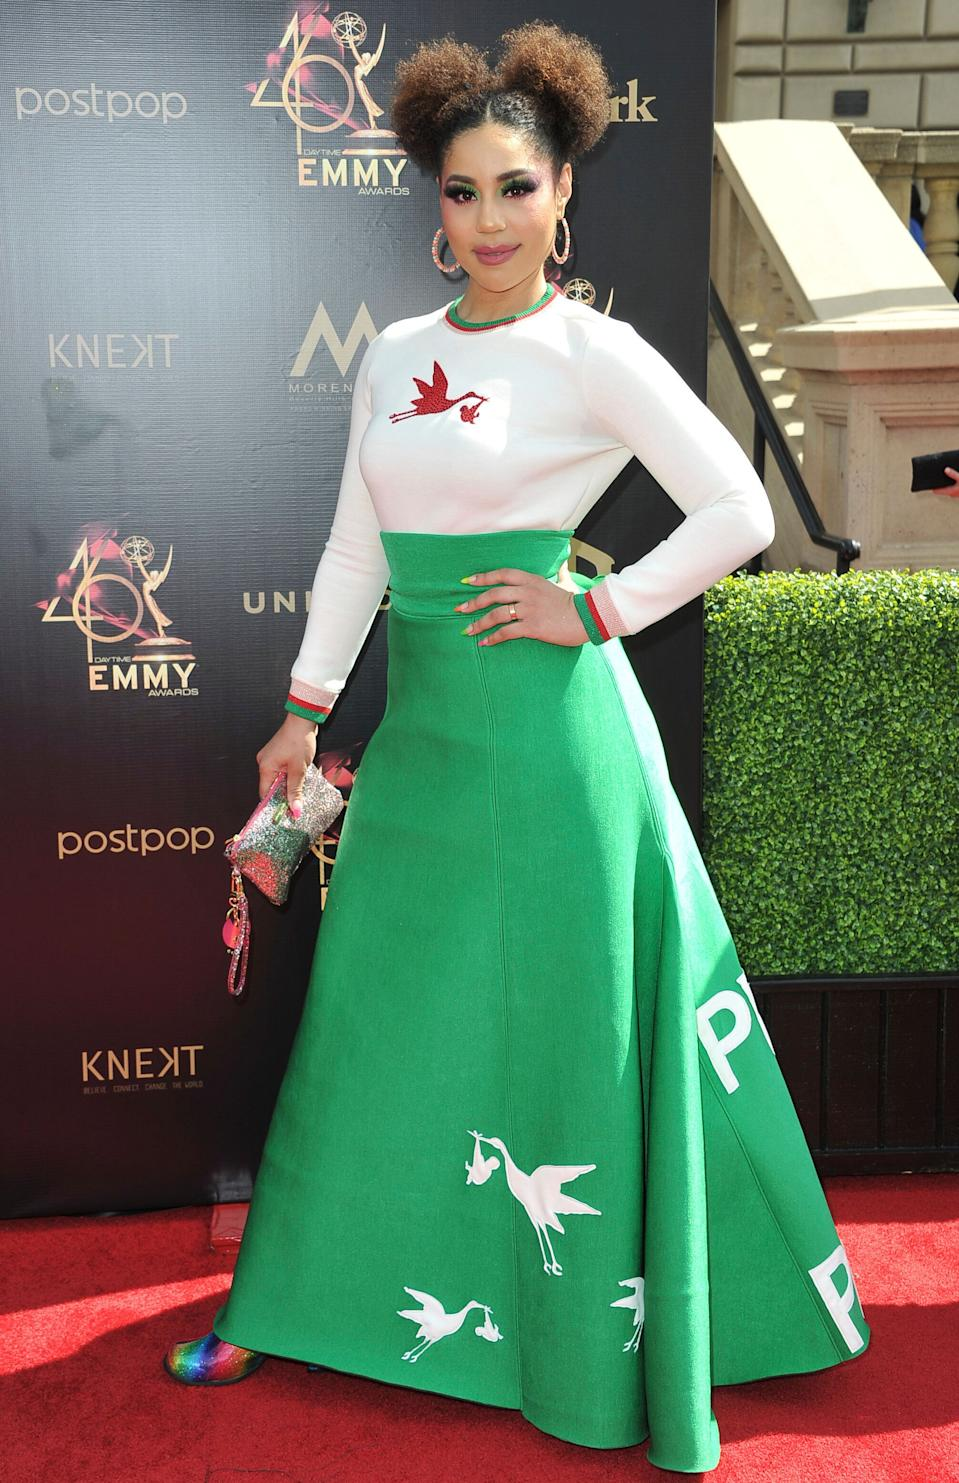 Joy Villa arrives at the 46th annual Daytime Emmy Awards at the Pasadena Civic Center on Sunday, May 5, 2019, in Pasadena, Calif. (Photo by Richard Shotwell/Invision/AP)